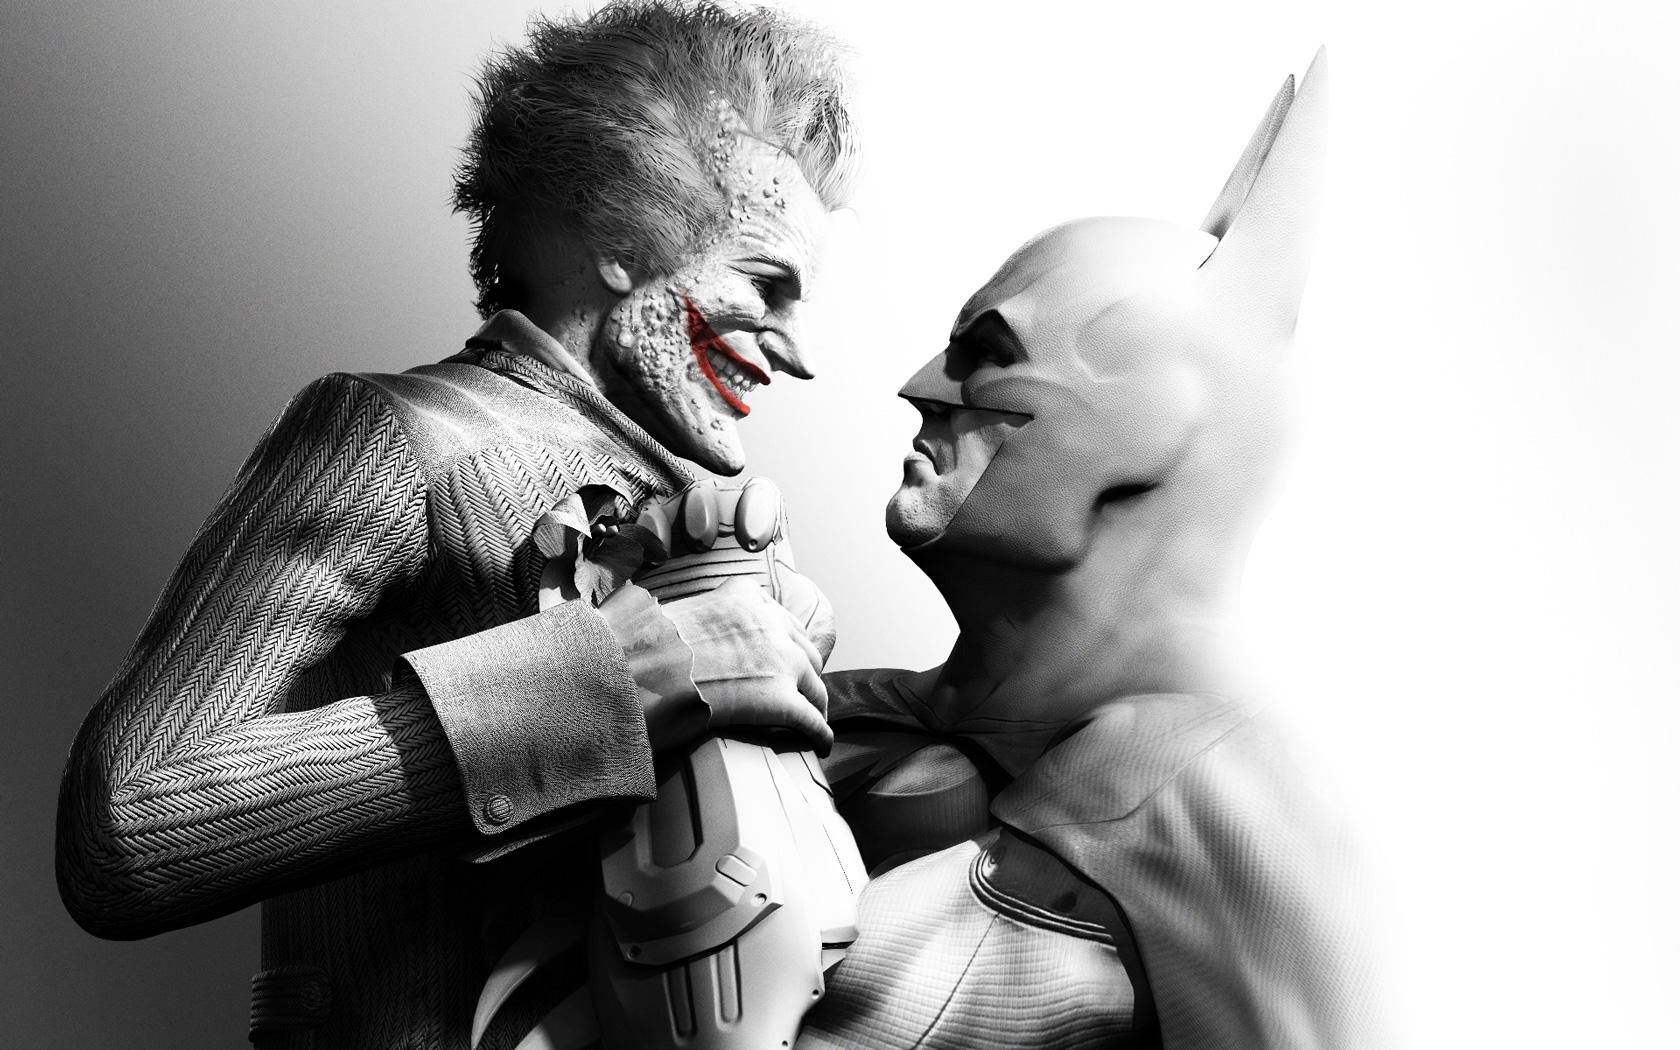 Free Batman: Arkham City Wallpaper in 1680x1050